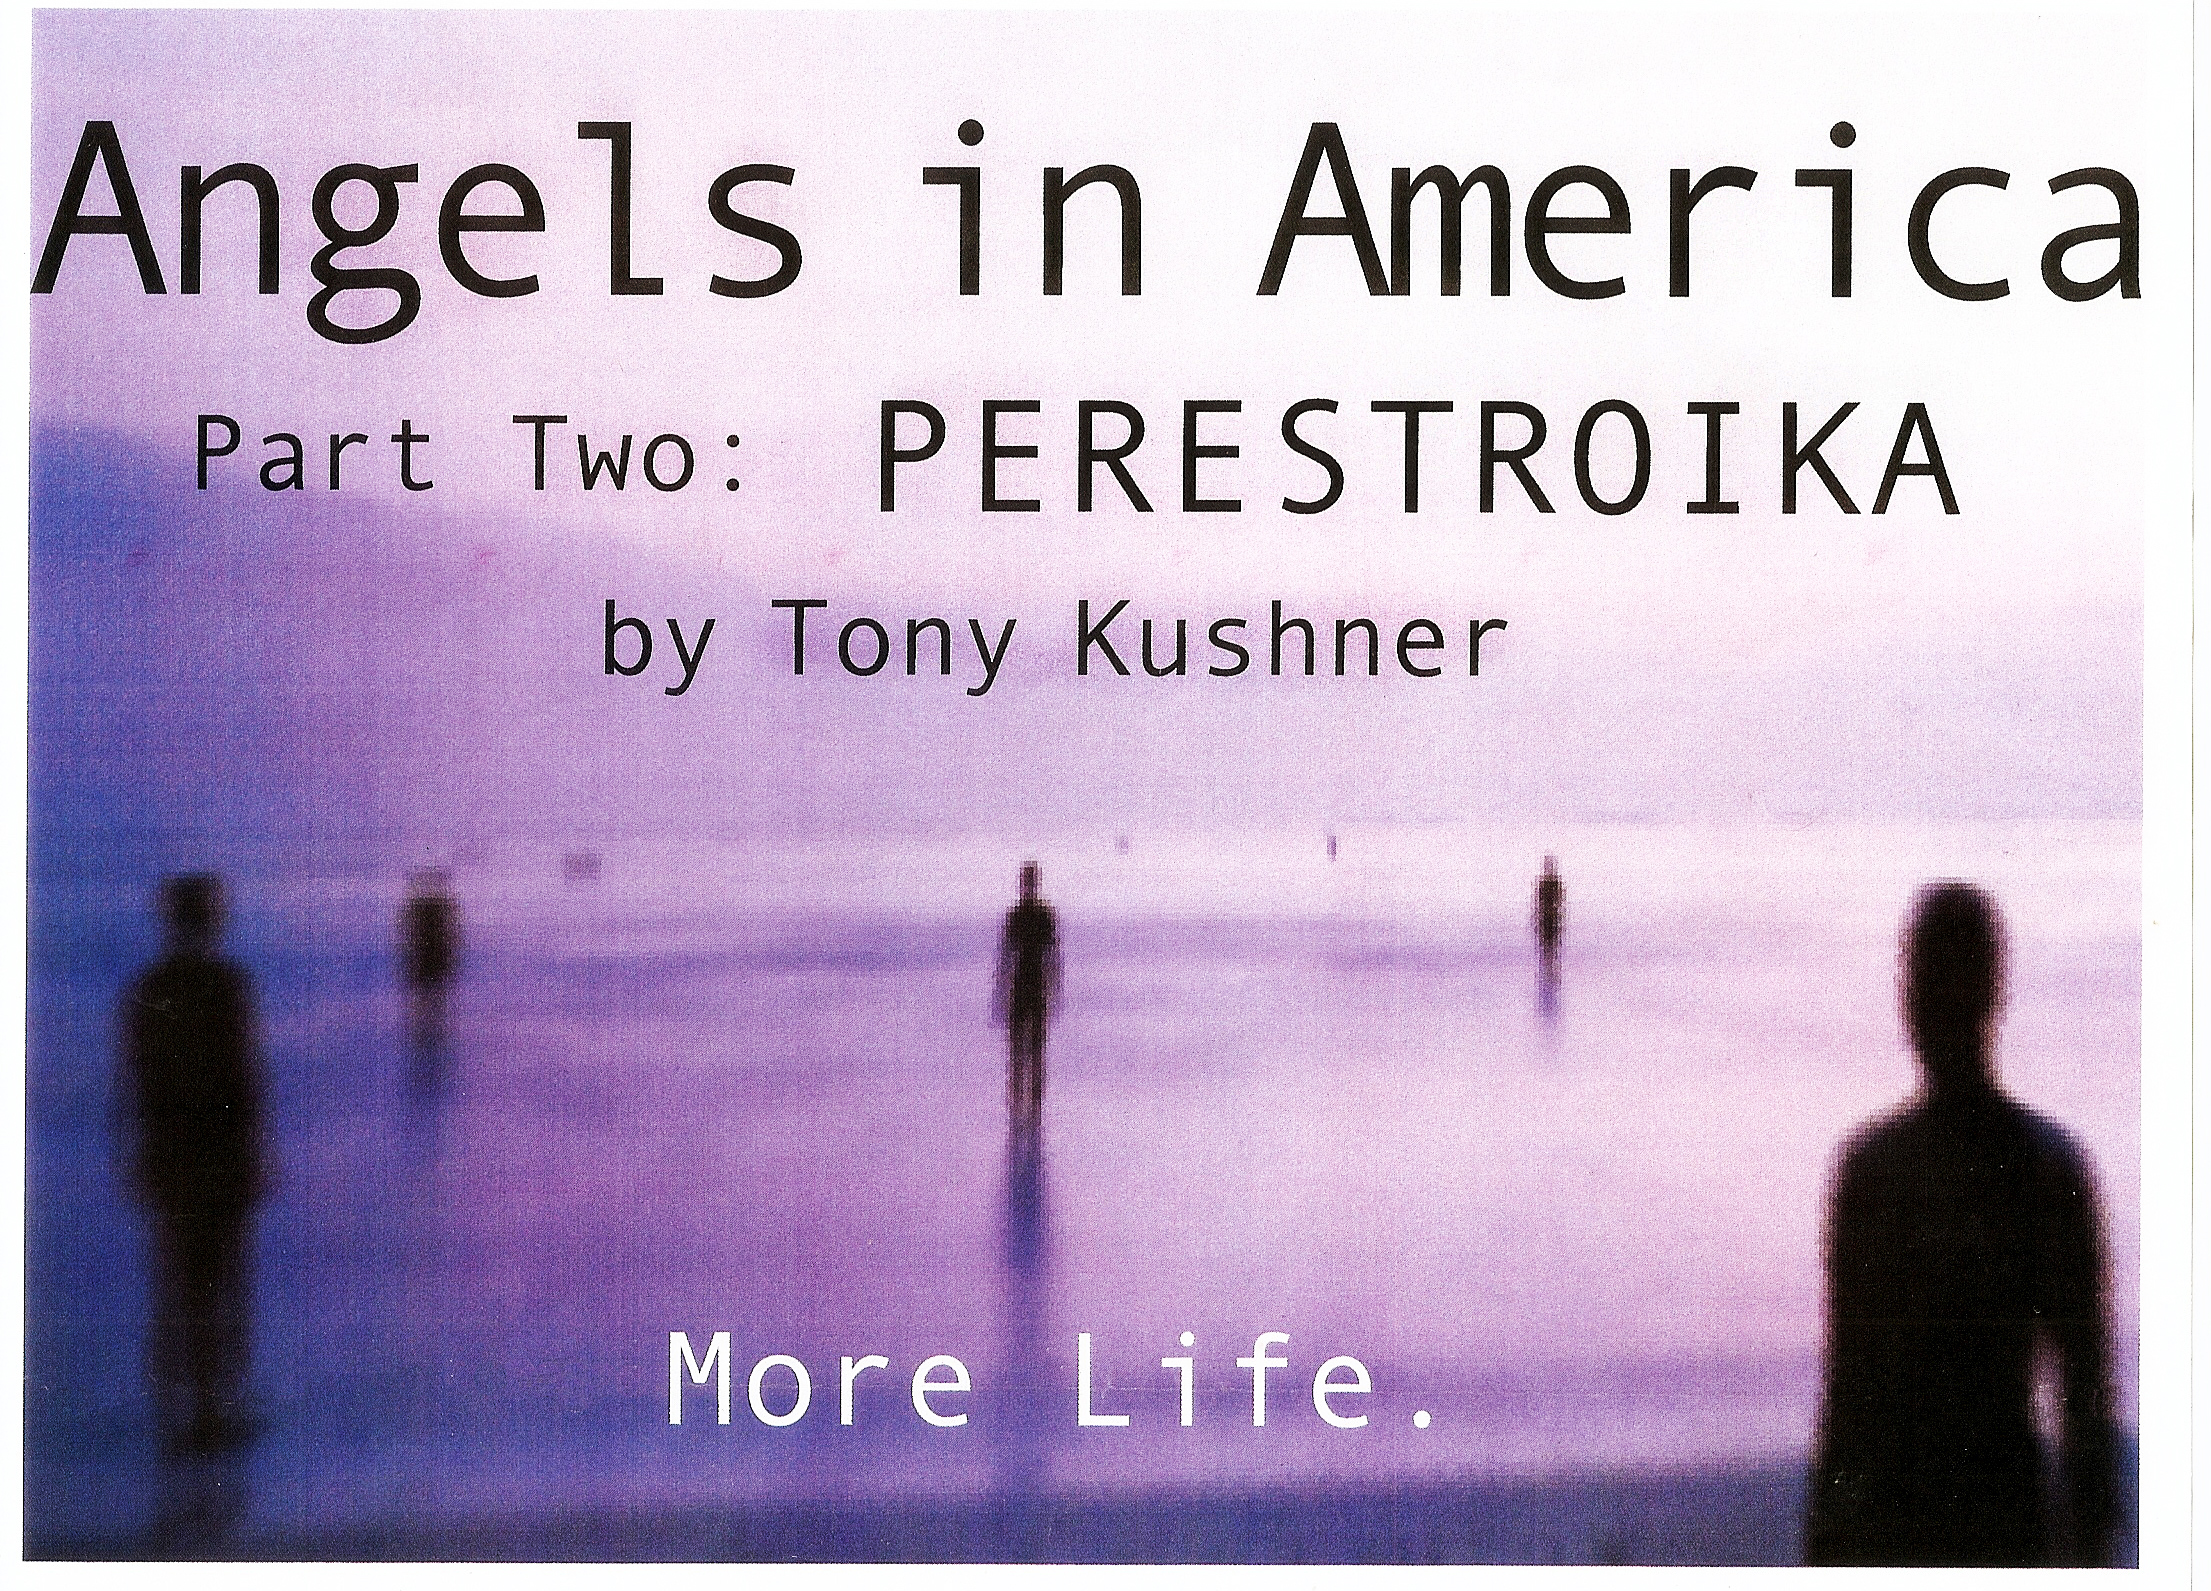 Graphic Design, Angels in America, 2002.